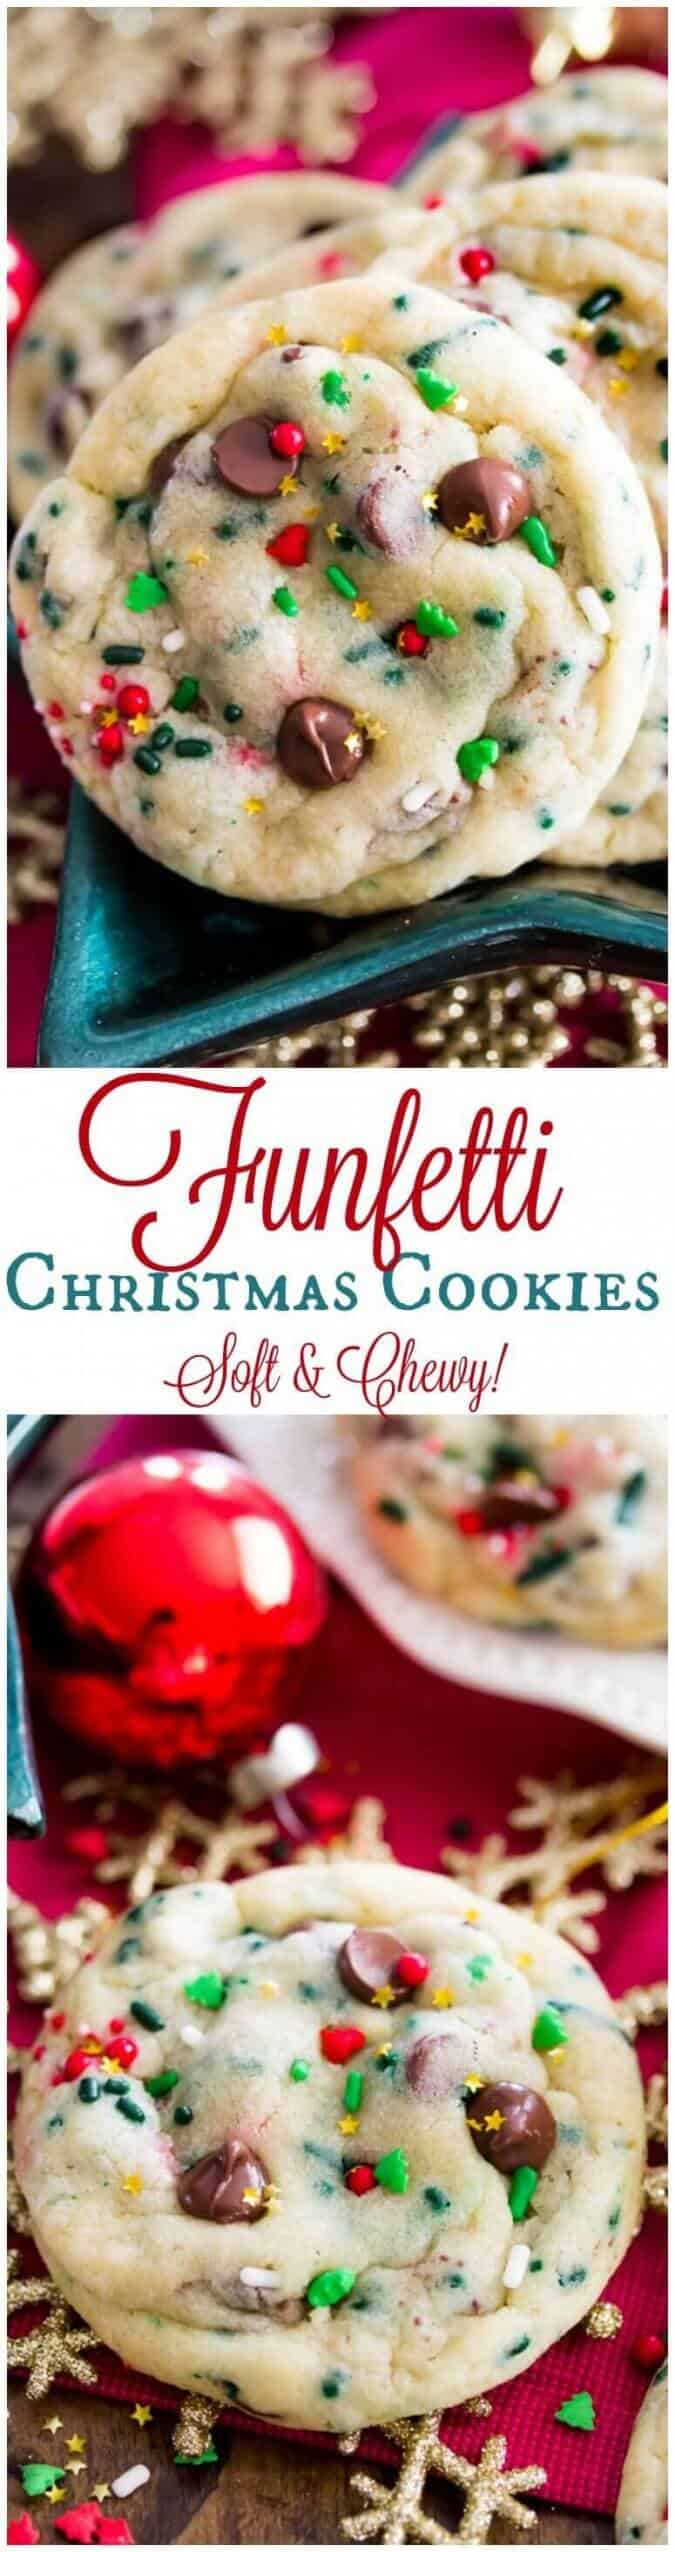 Funfetti Christmas Cookies, soft, chewy, and festive! || Sugar Spun Run